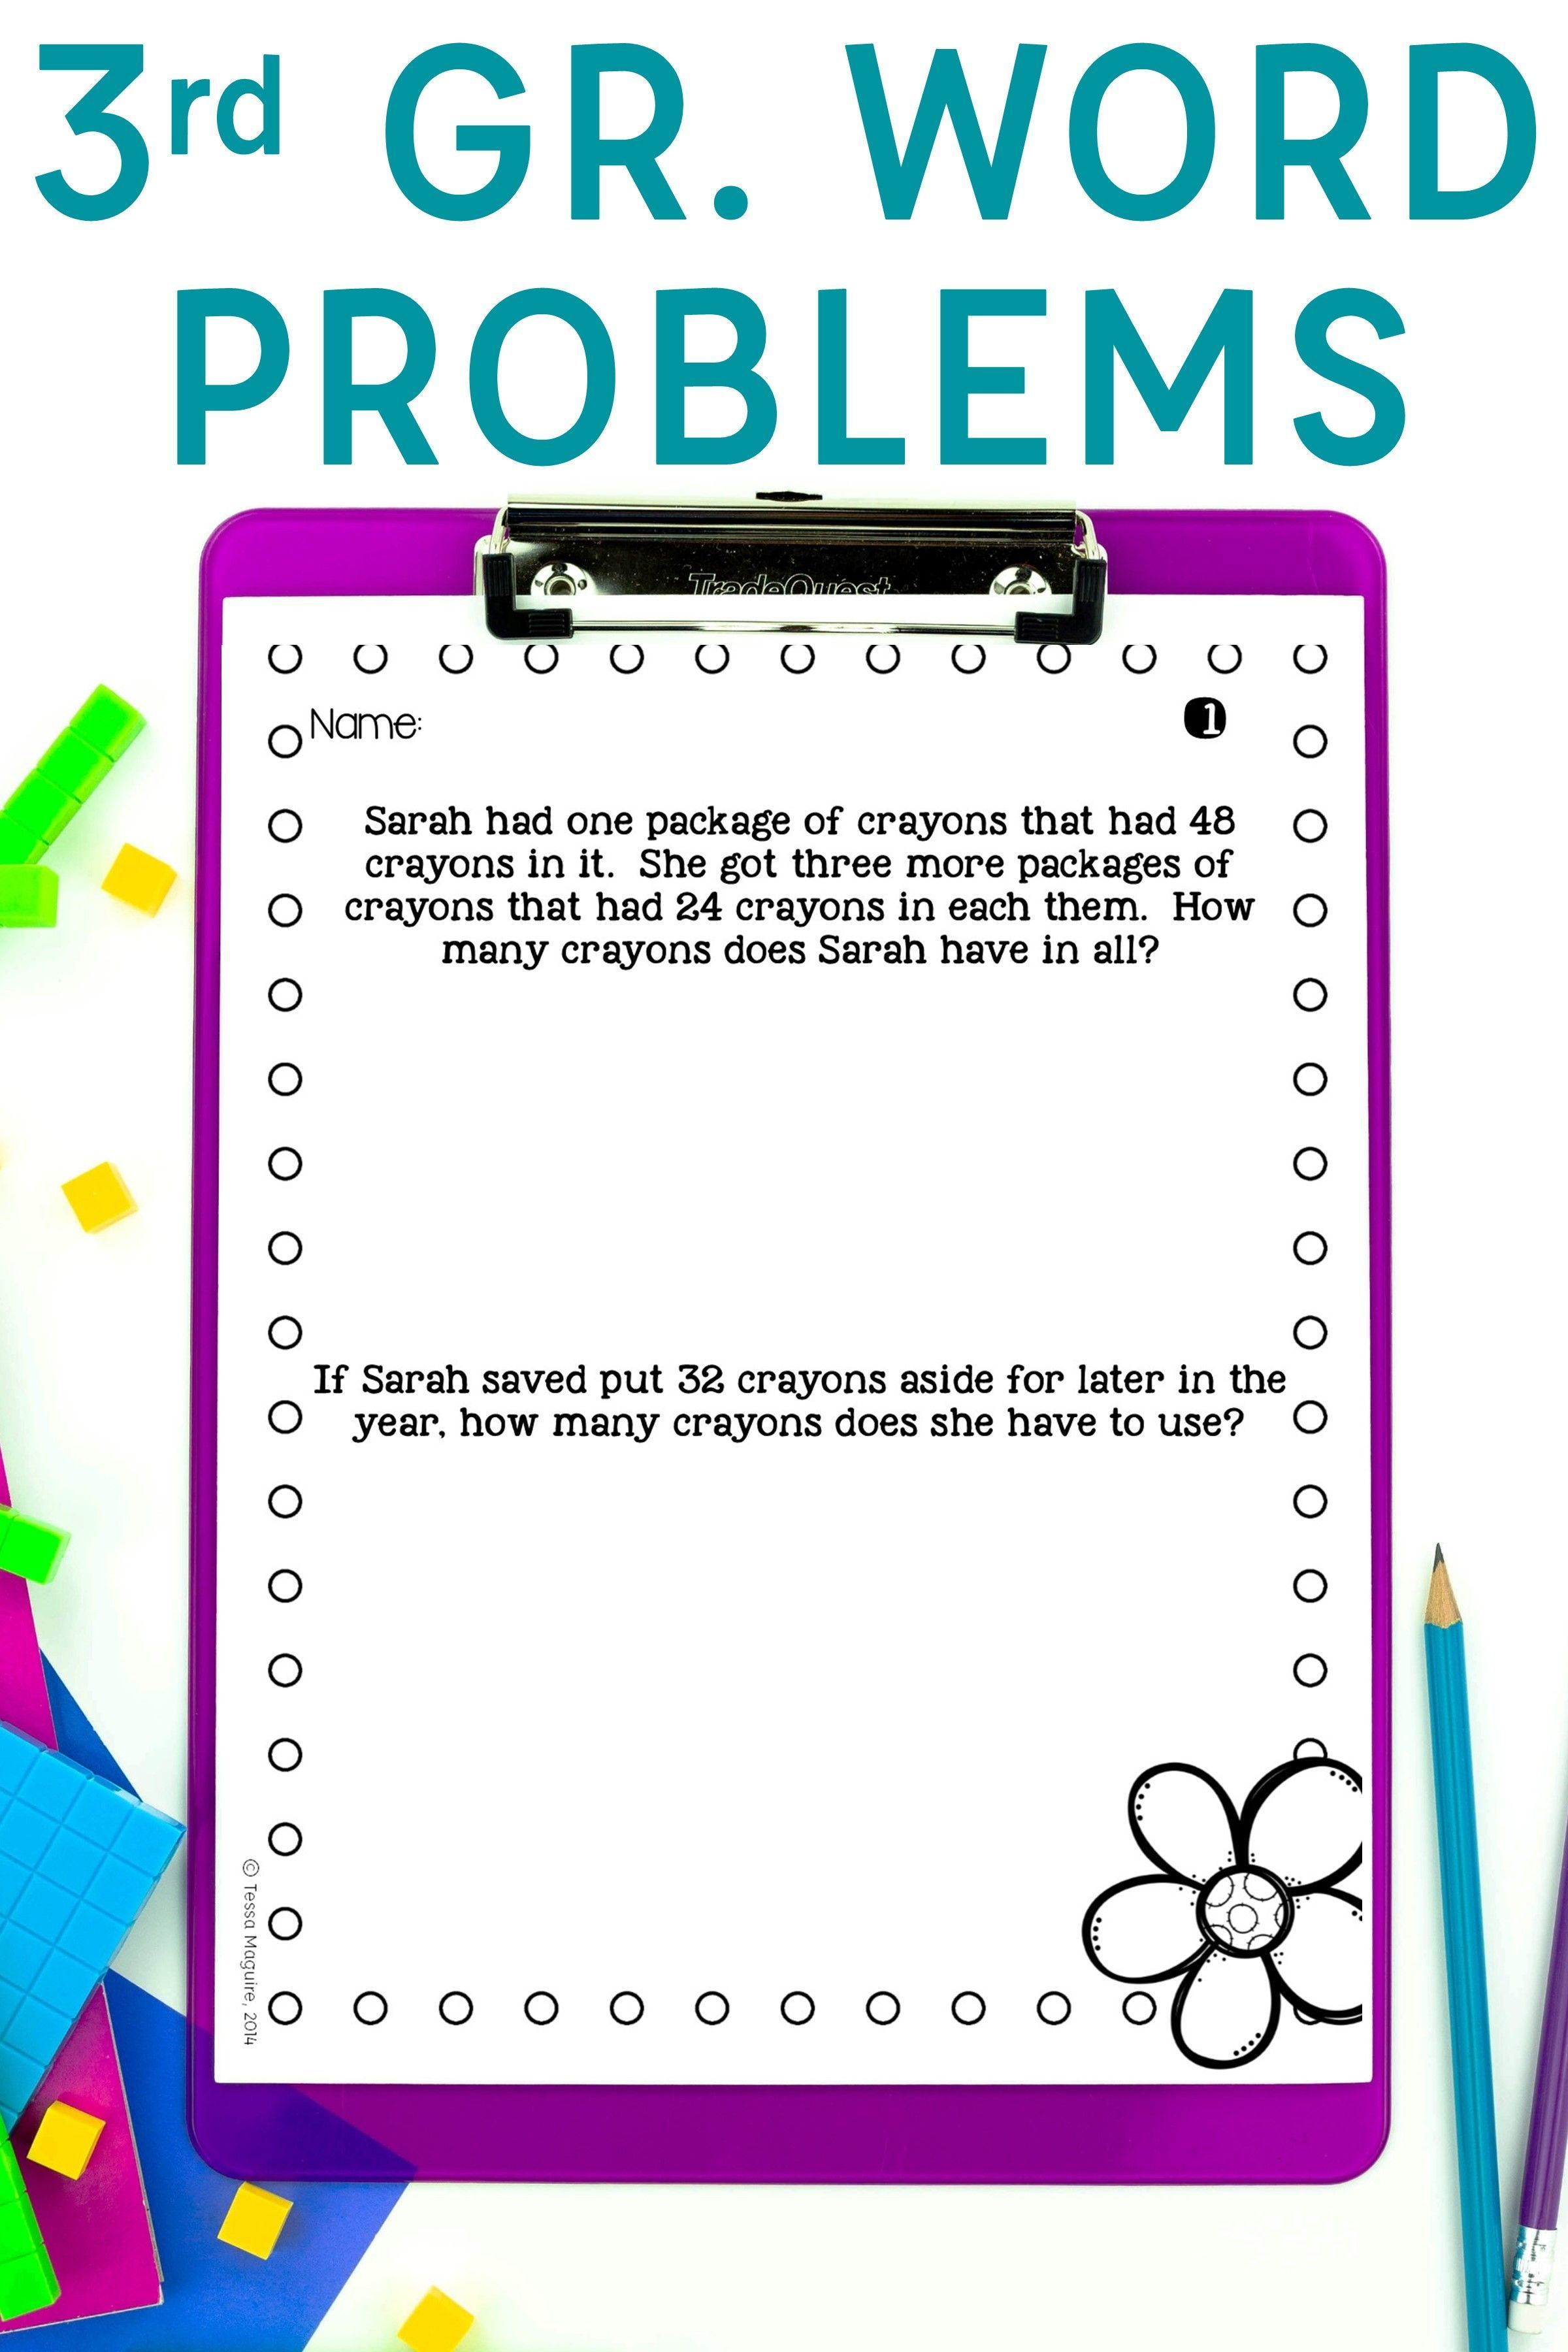 hight resolution of https://cute766.info/3rd-grade-multi-step-word-problems-of-the-day-bundle-word-problems-3rd-grade-words-multi/